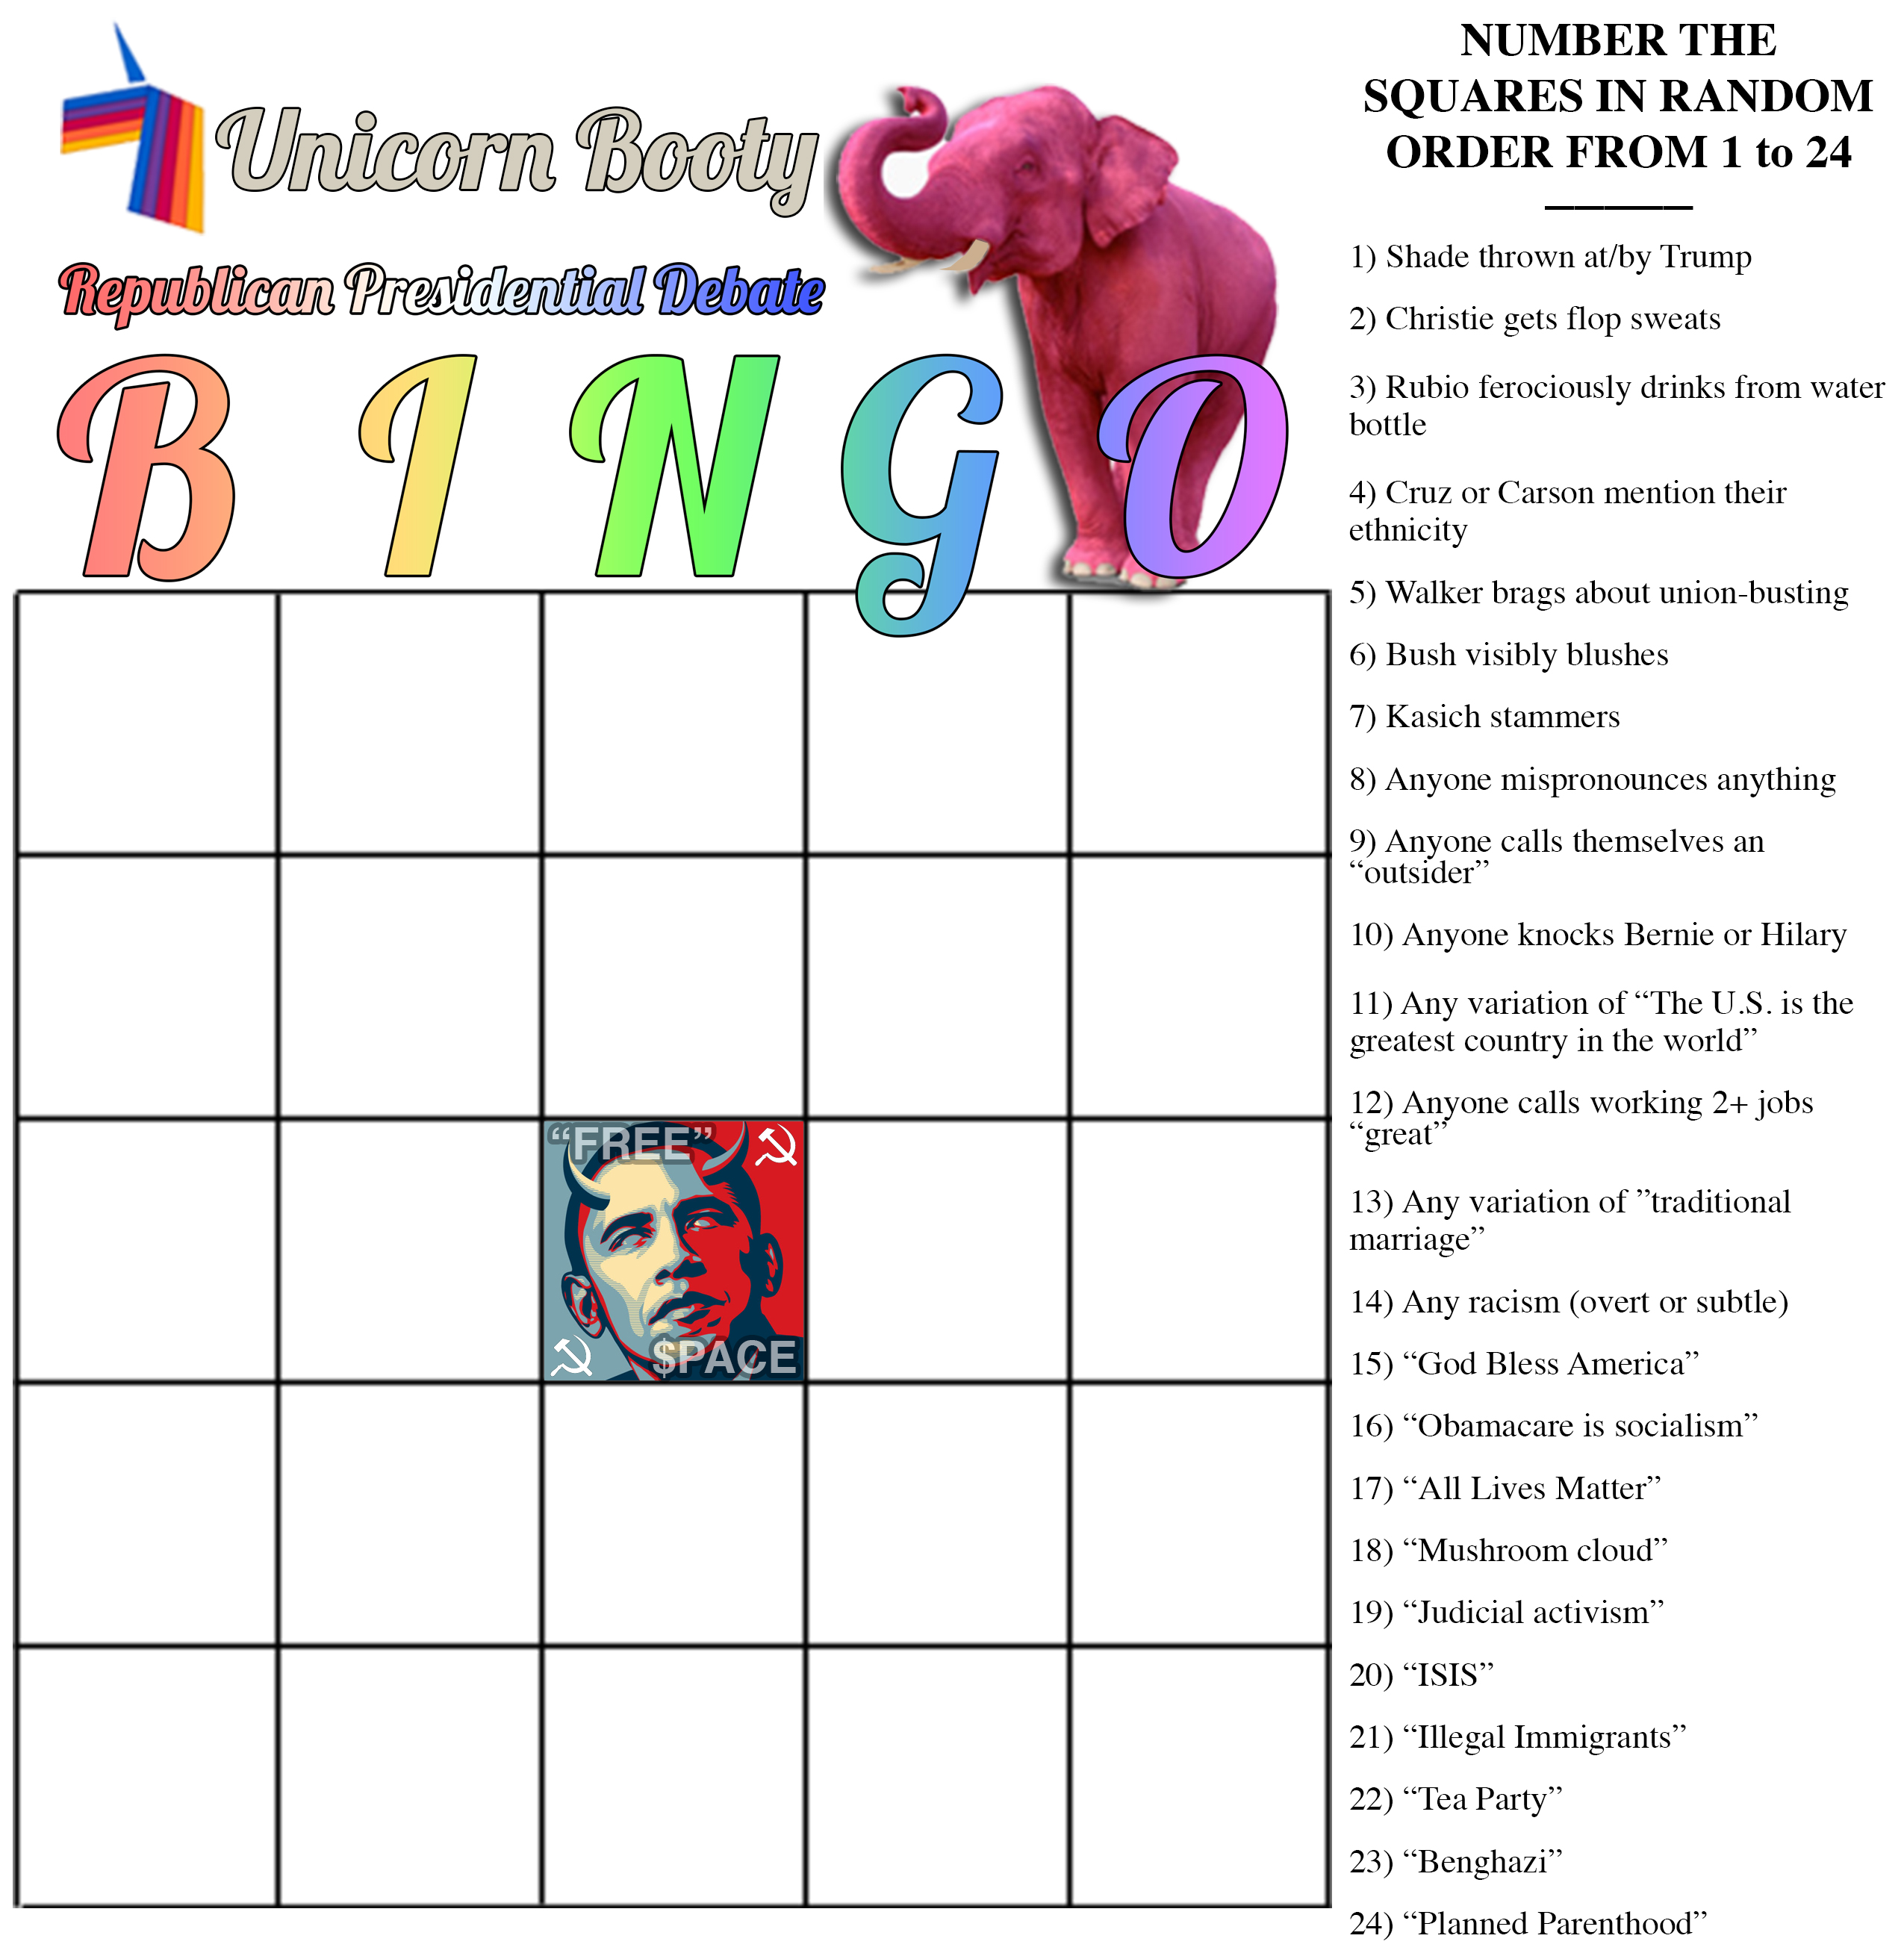 unicorn_booty_republican_debate_bingo_card